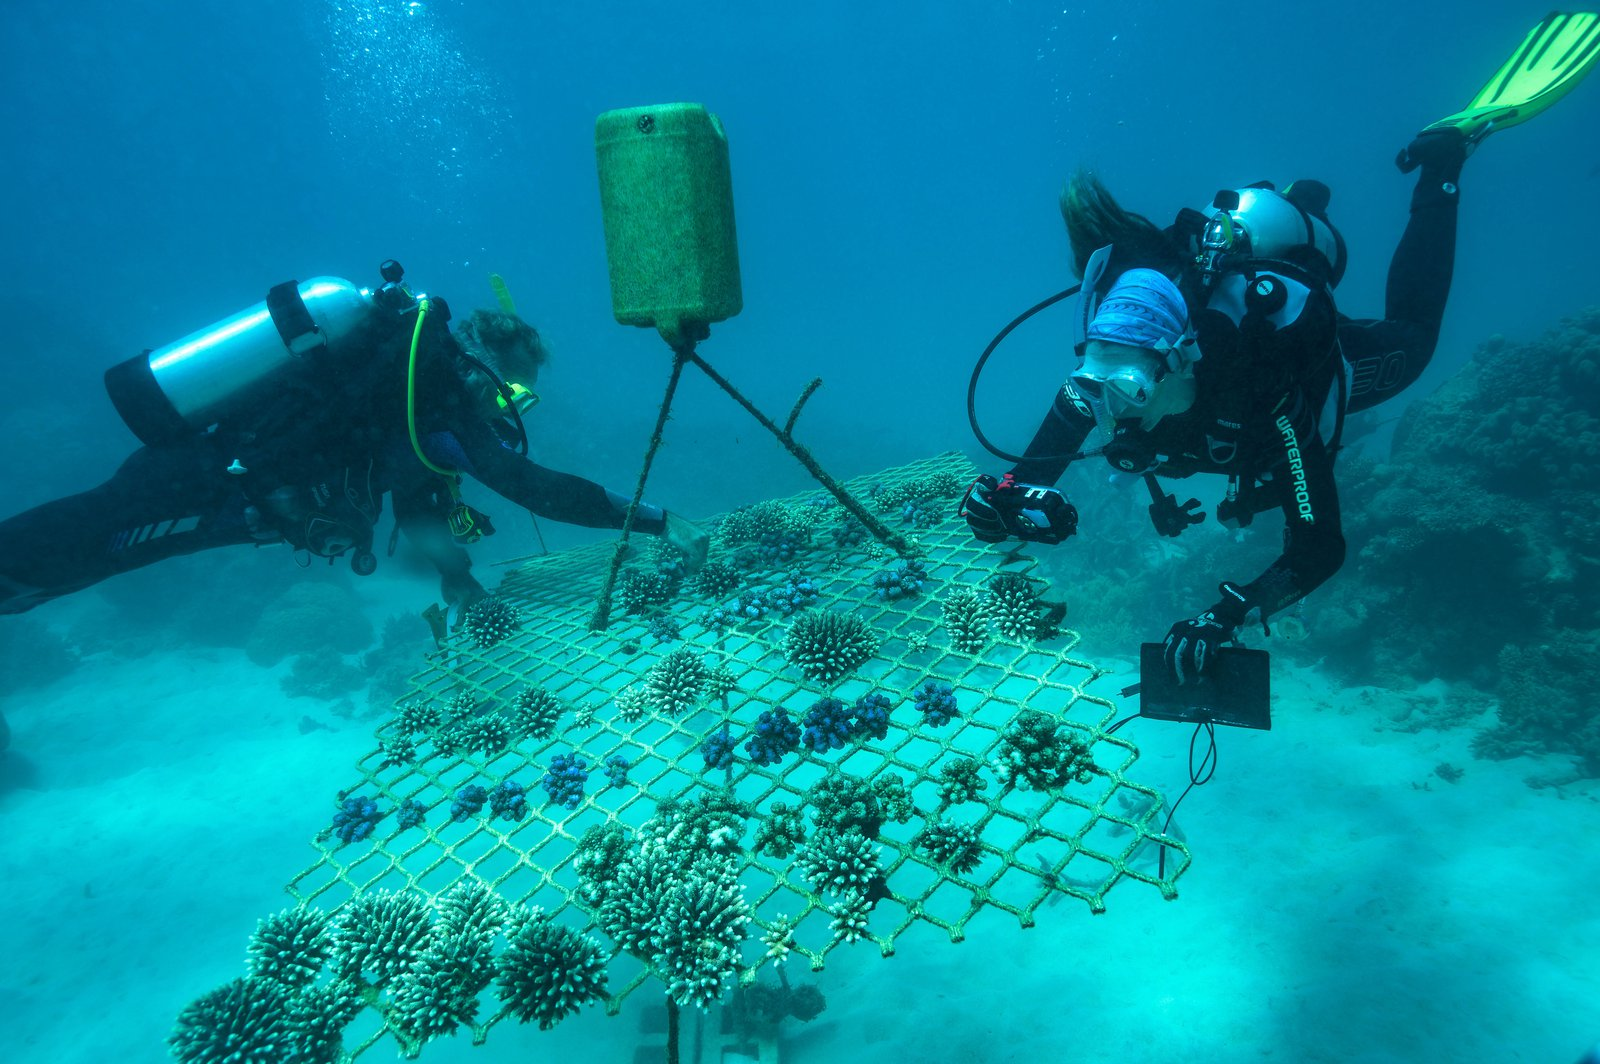 Coral Nurture Program, Finalist - 2021 NSW Environment, Energy and Science (DPIE) Eureka Prize for Applied Environmental Research